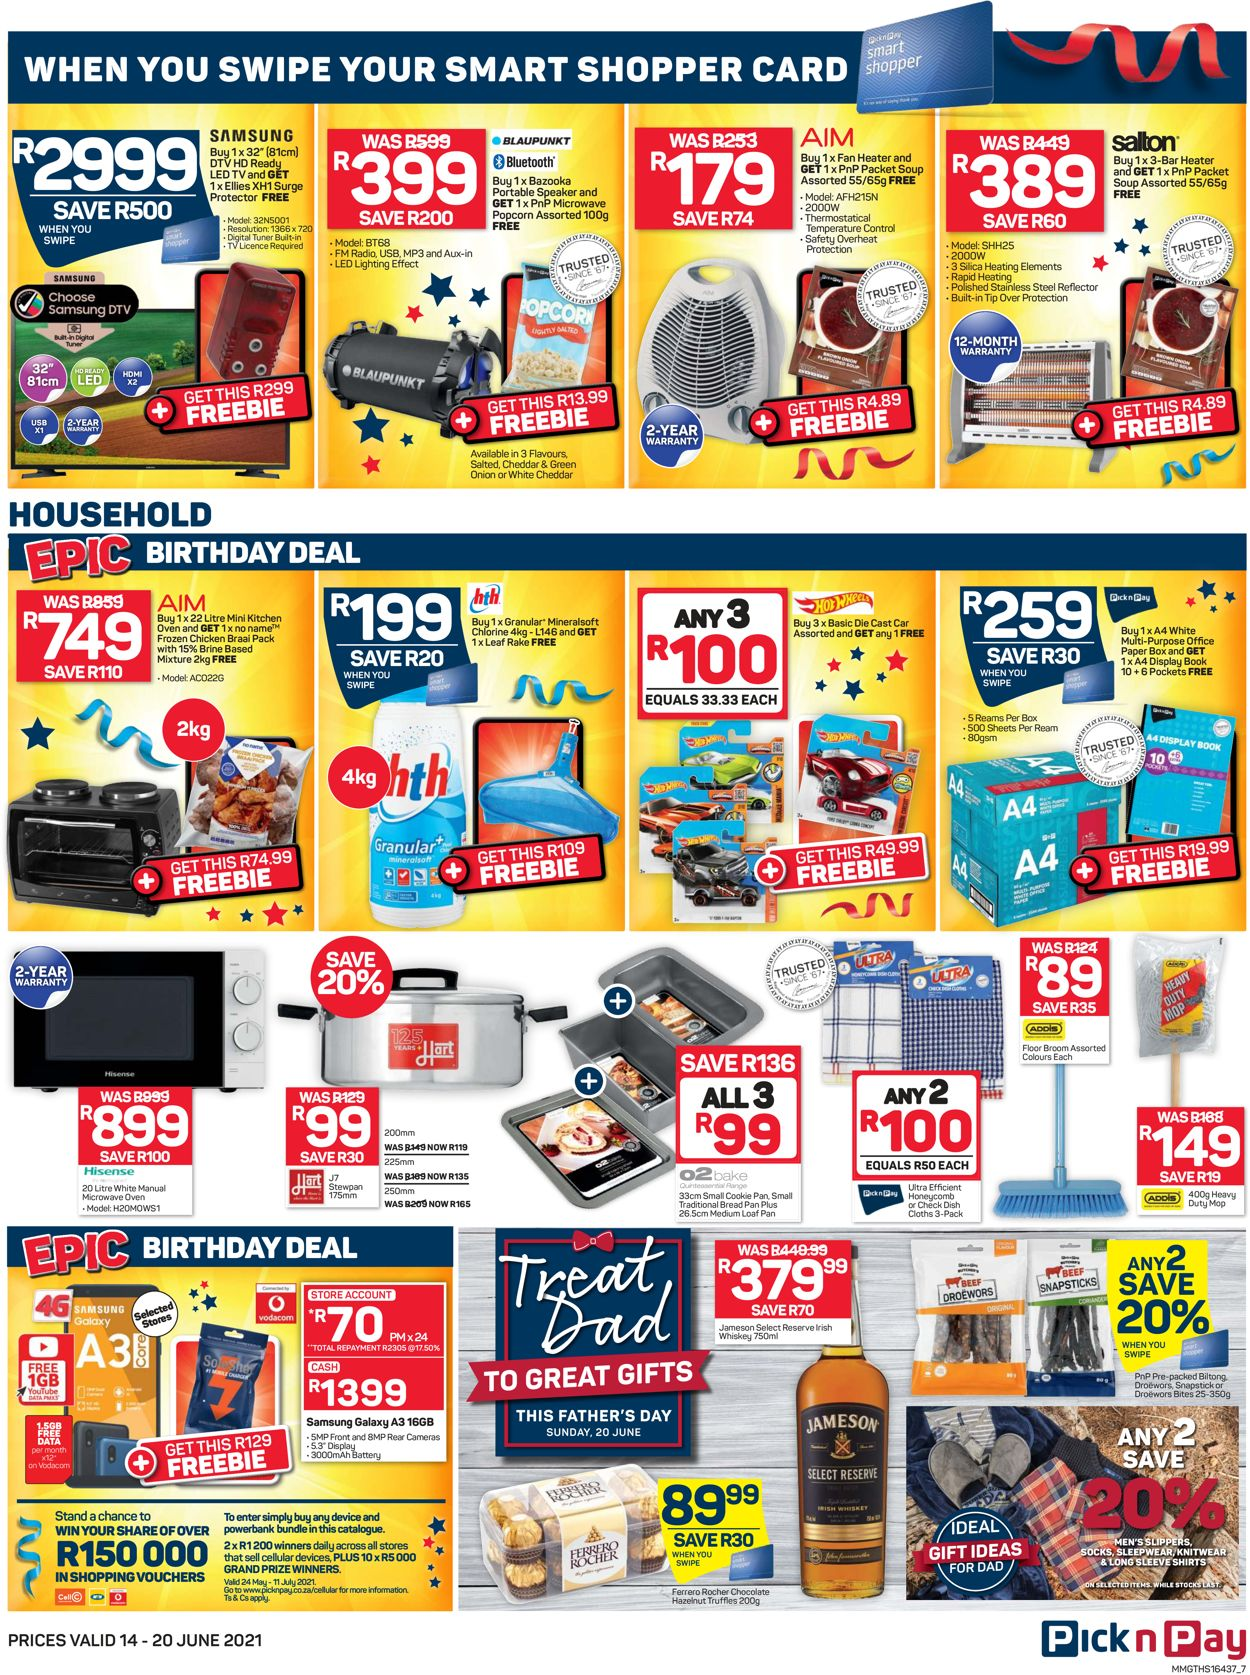 Pick n Pay Catalogue - 2021/06/14-2021/06/20 (Page 7)